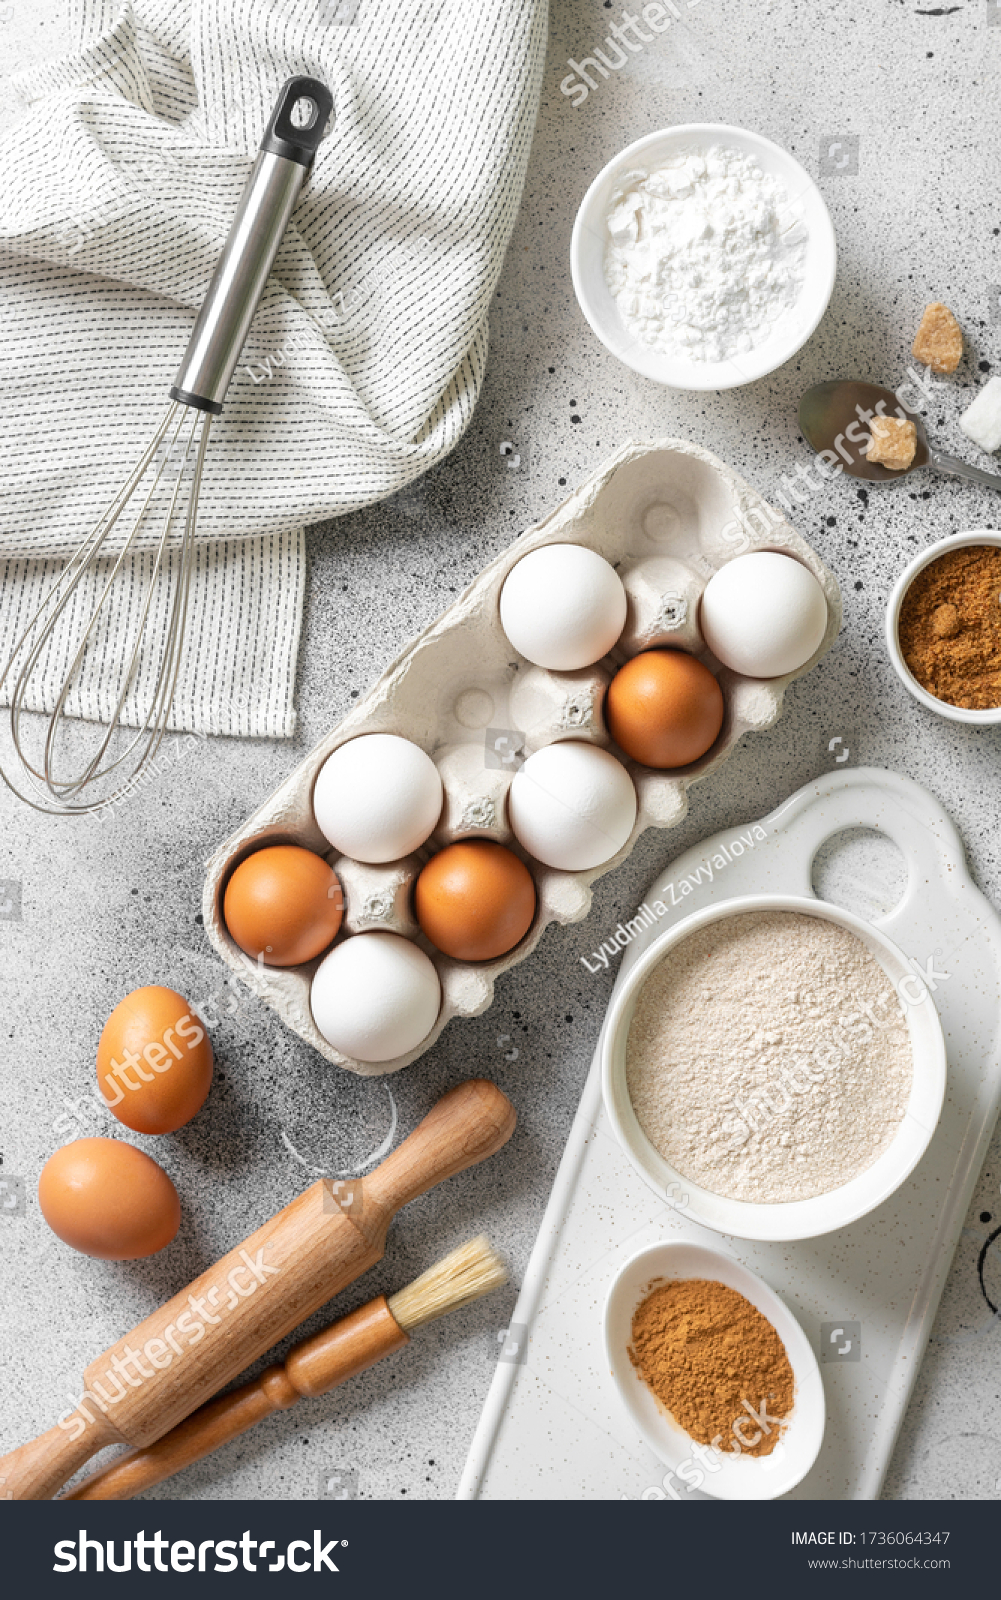 Ingredients for baking on a culinary background. Eggs, flour, cinnamon, sugar, soda on the kitchen table. Concept of preparation for baking. Top view with space for text #1736064347